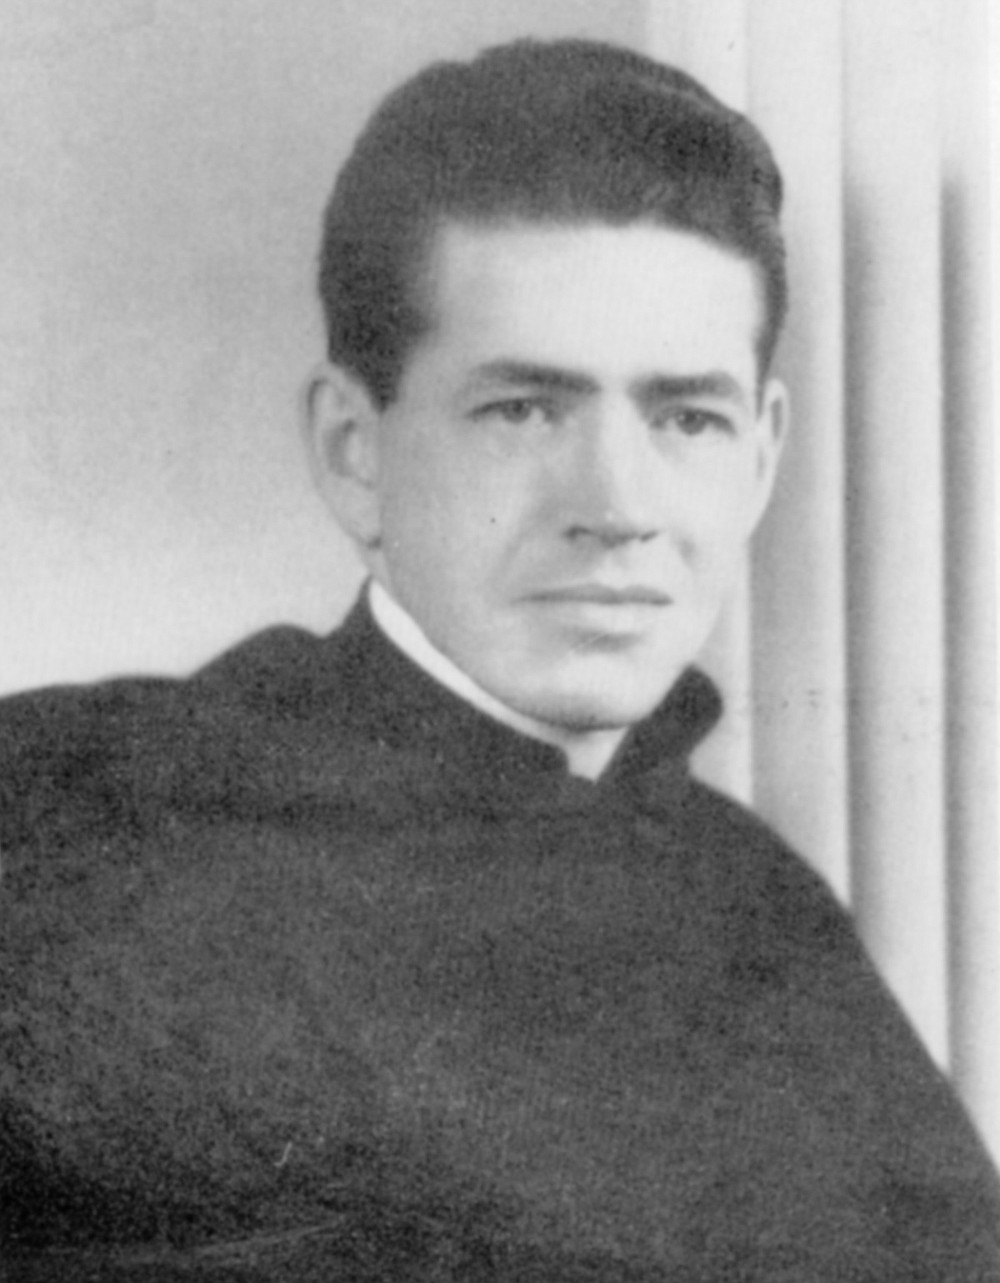 Father Aherne in his youth